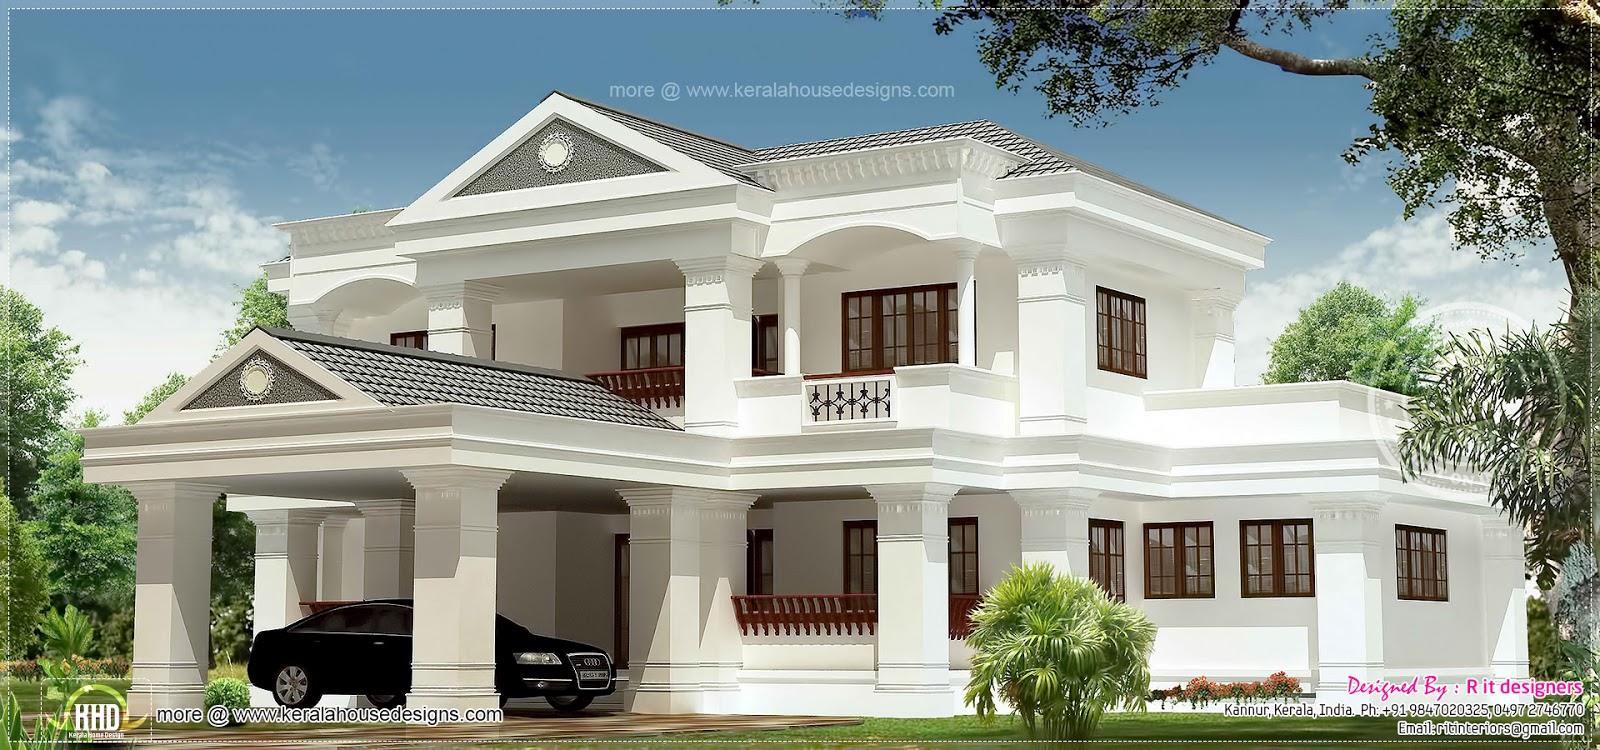 3100 luxury 5 bhk villa exterior house design plans - How much paint for 1800 sq ft exterior ...